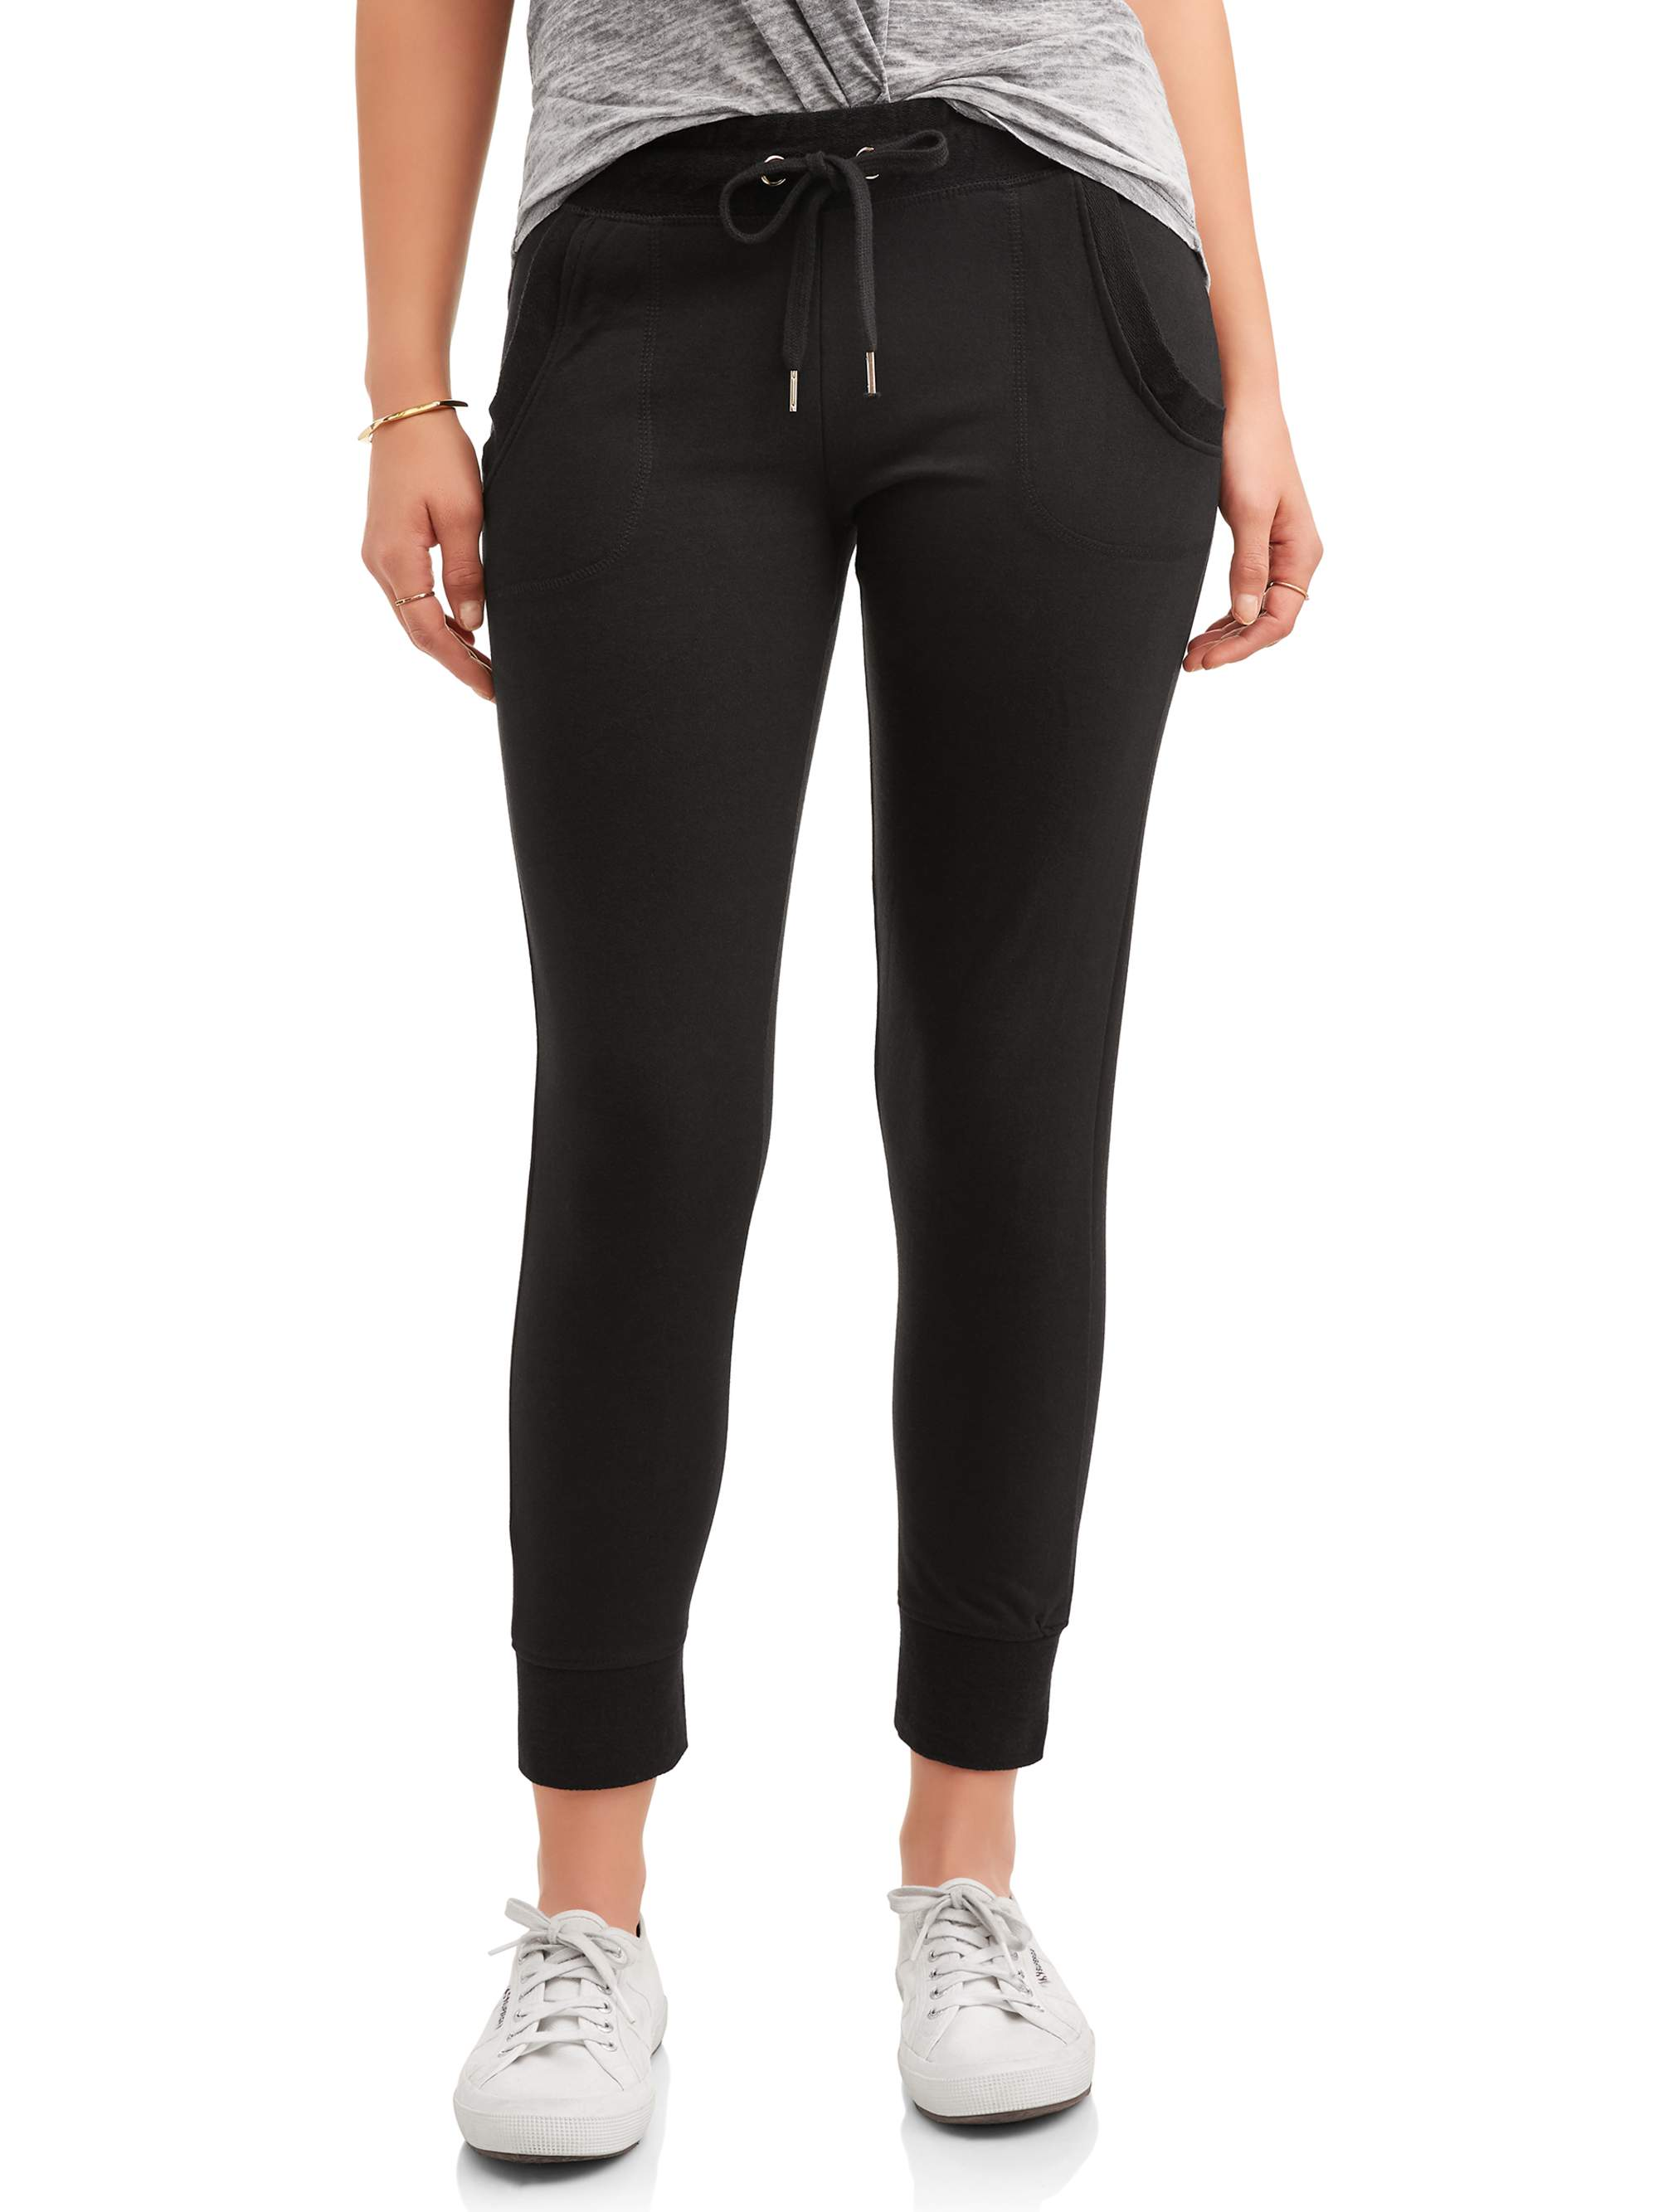 New York Laundry Athleisure Women's French Terry Jogger Pant with Pork Chop Pockets